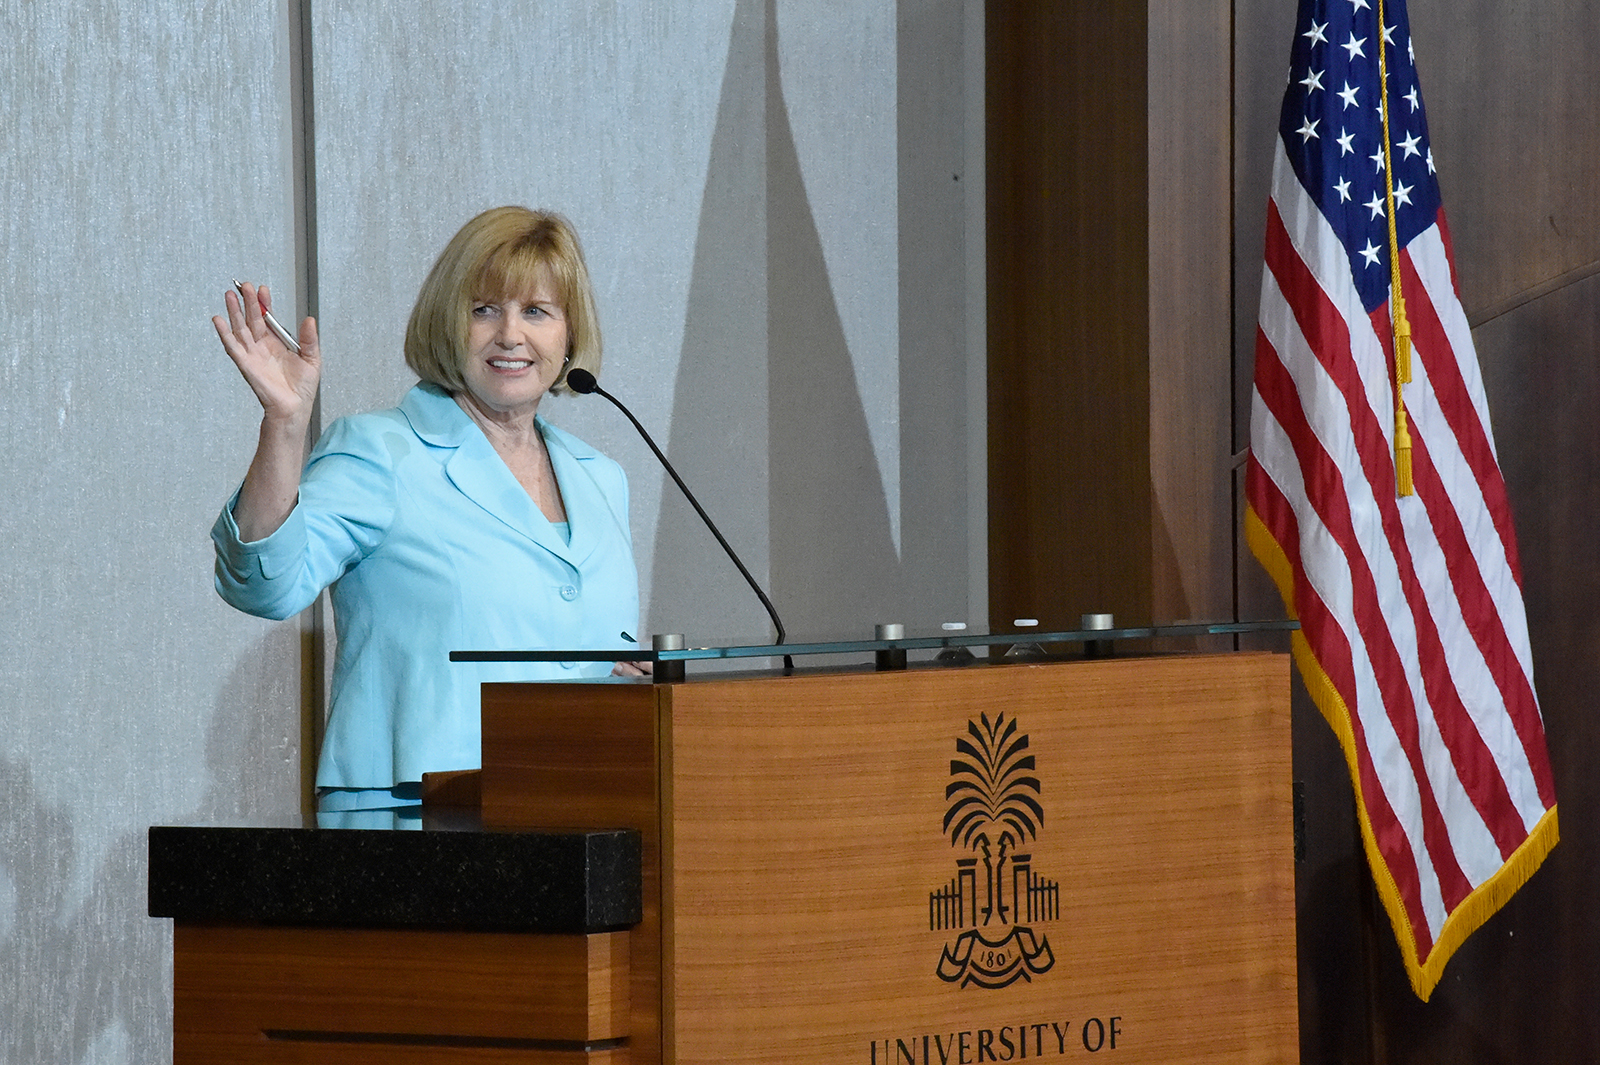 South Carolina Education Superintendent Molly Spearman addresses the audience at an accelerateSC gathering in Columbia, South Carolina on April 23.